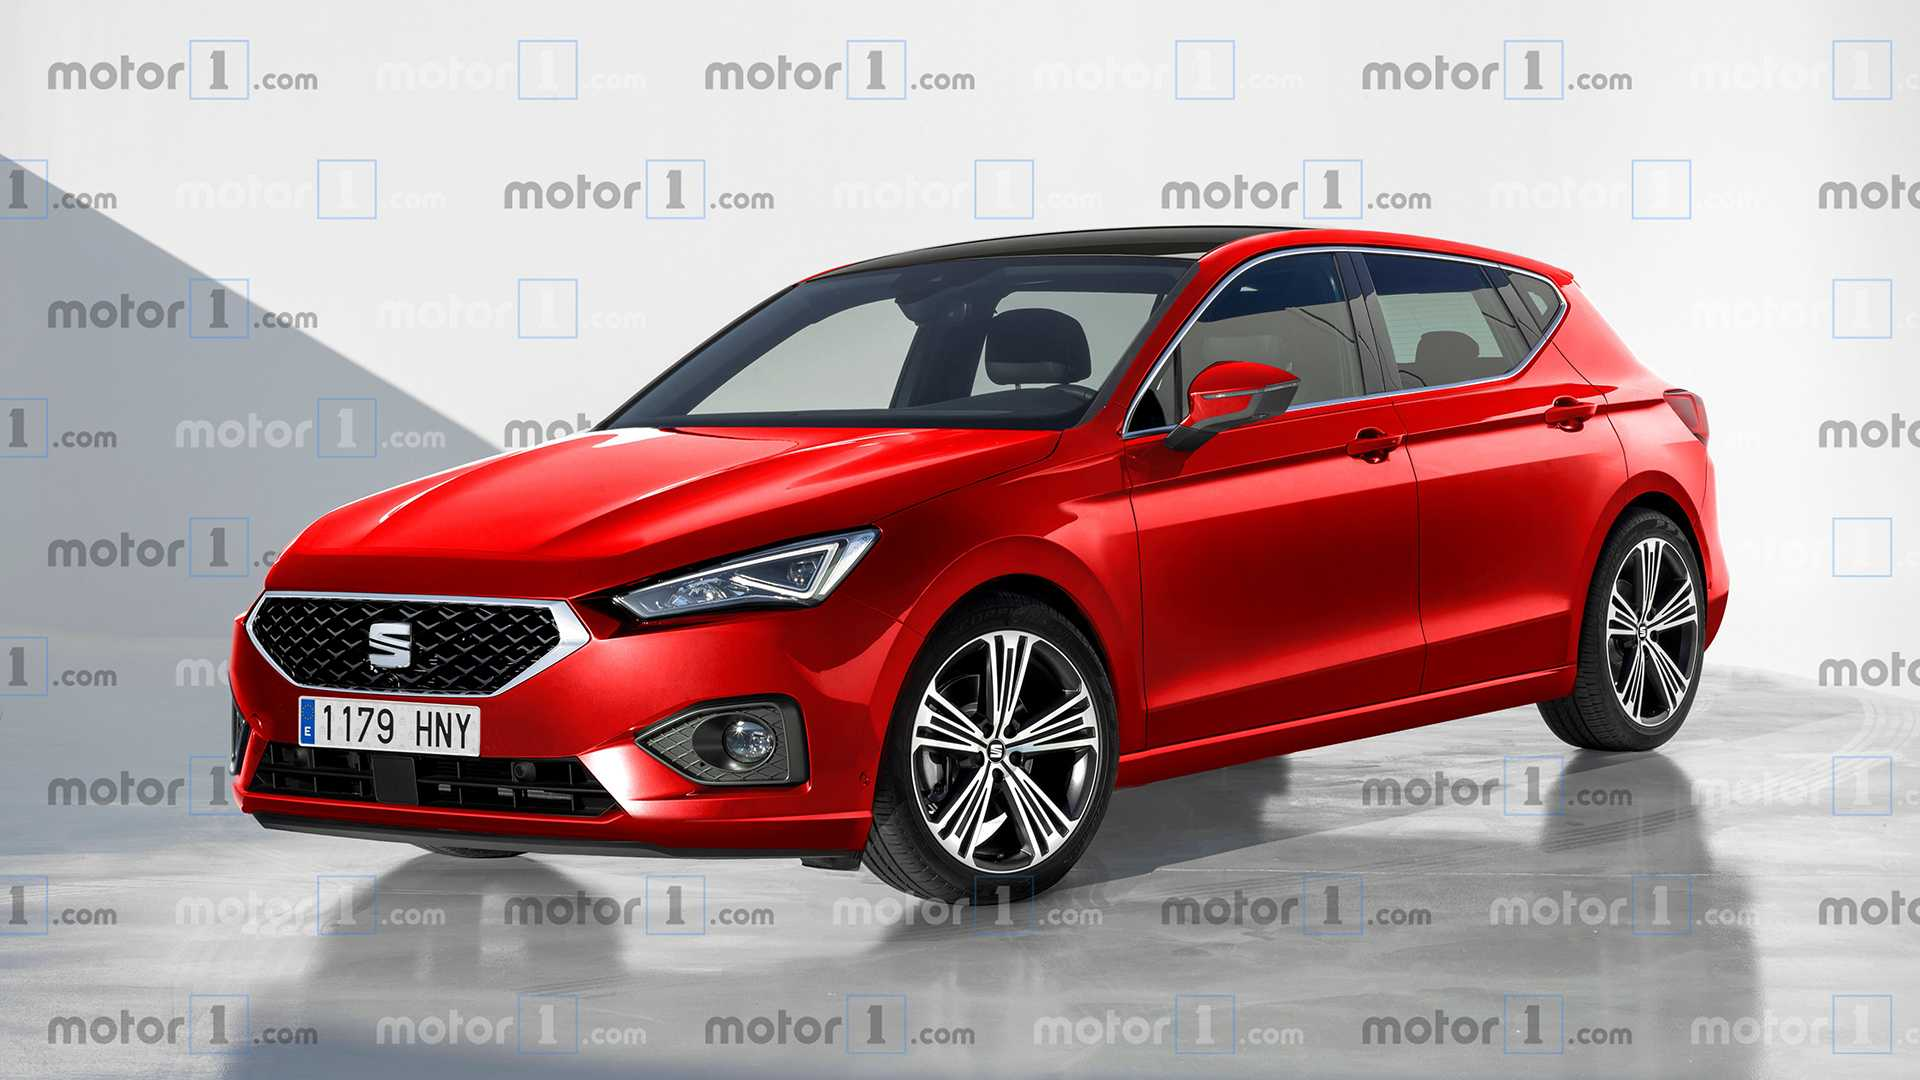 2020 SEAT Leon Rendering Sees Into The Future 1920x1080